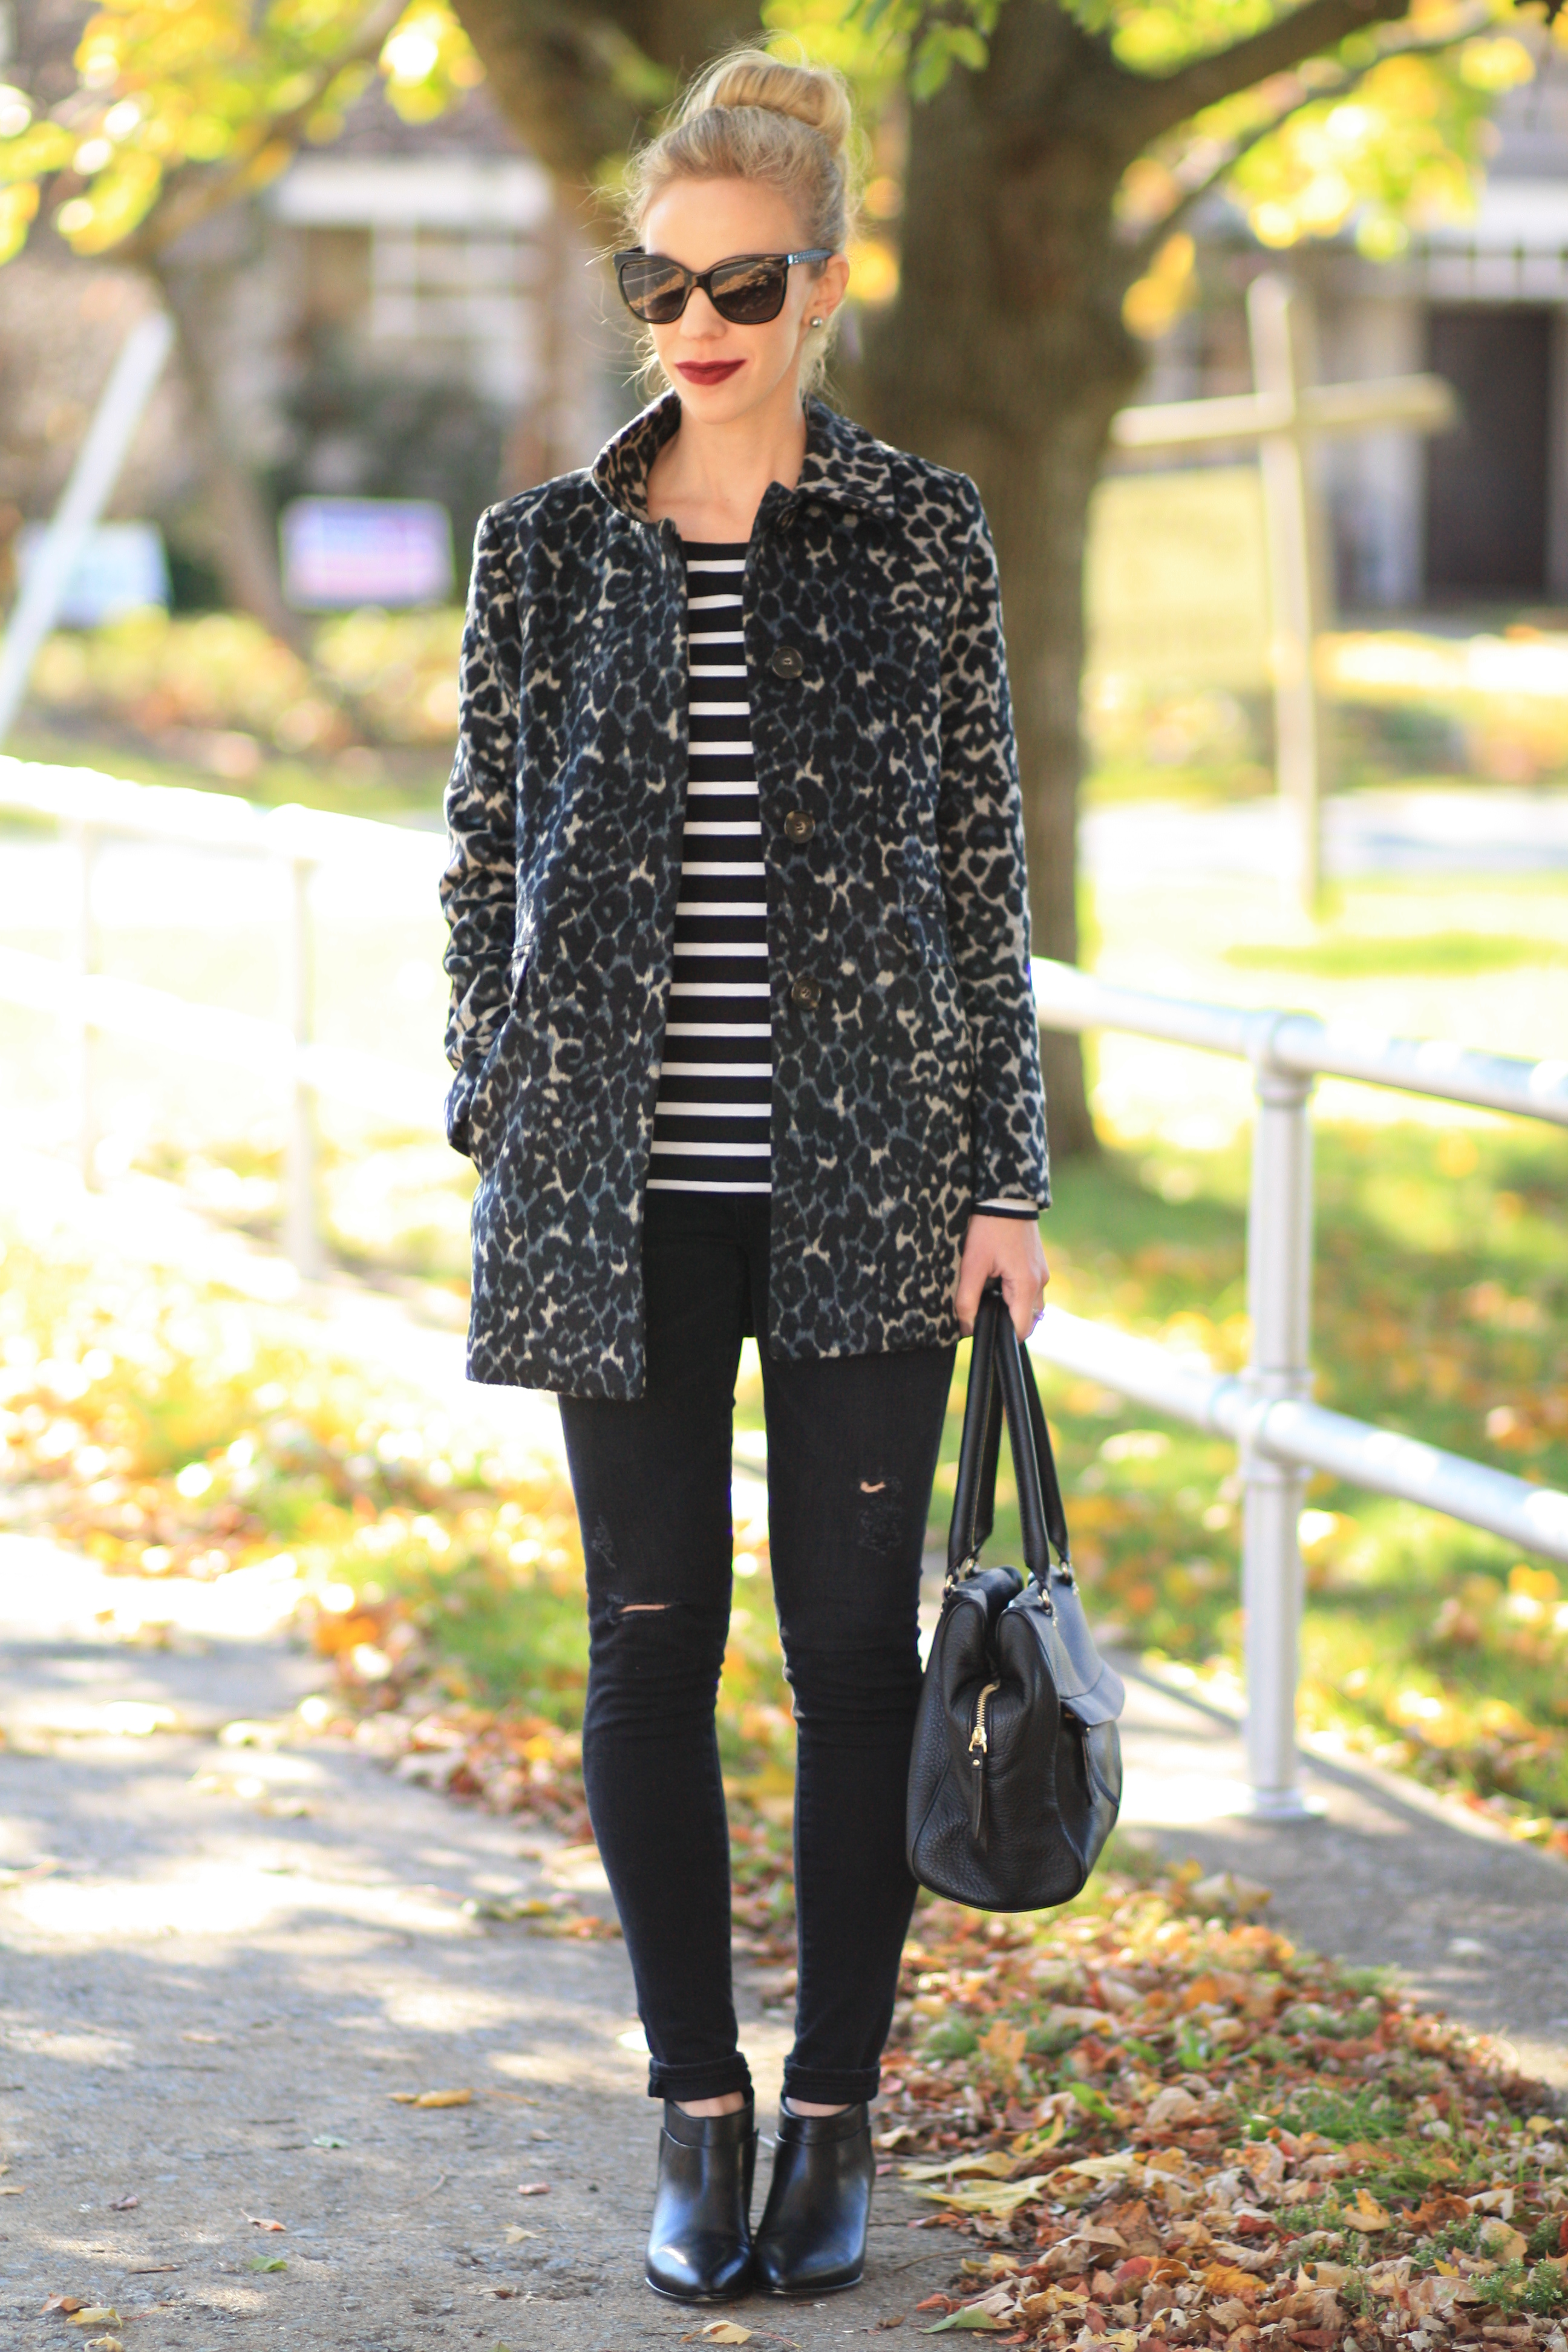 Edgy Leopard Car Coat Striped Tee Amp Distressed Black